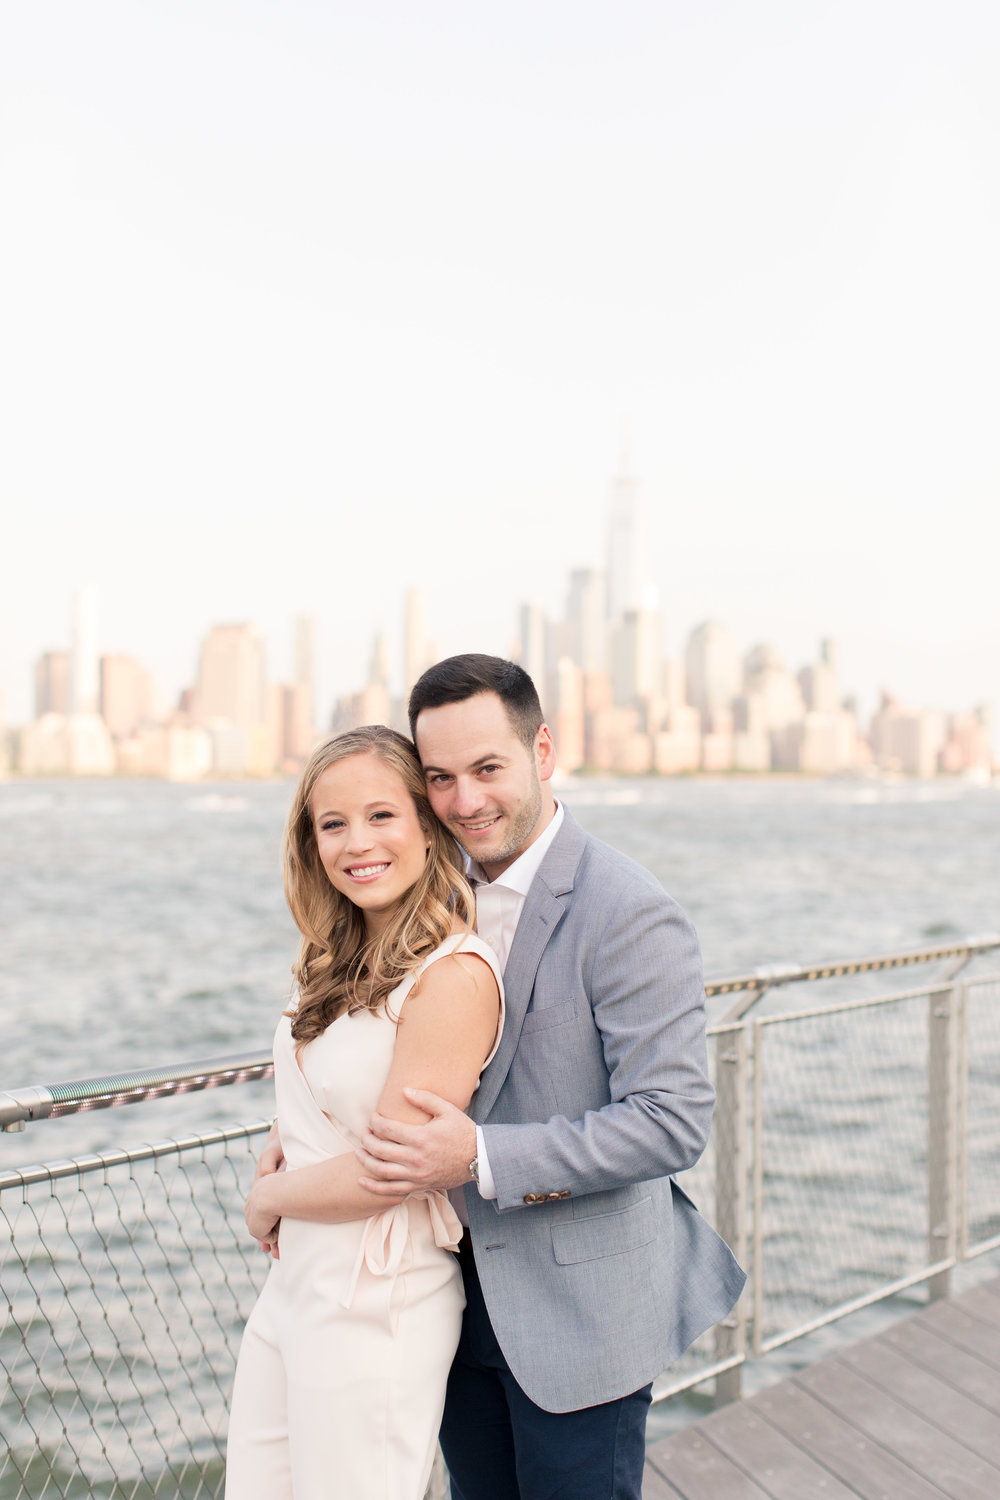 Ultimate Engagement Giveaway - Alyssa & Al - 10